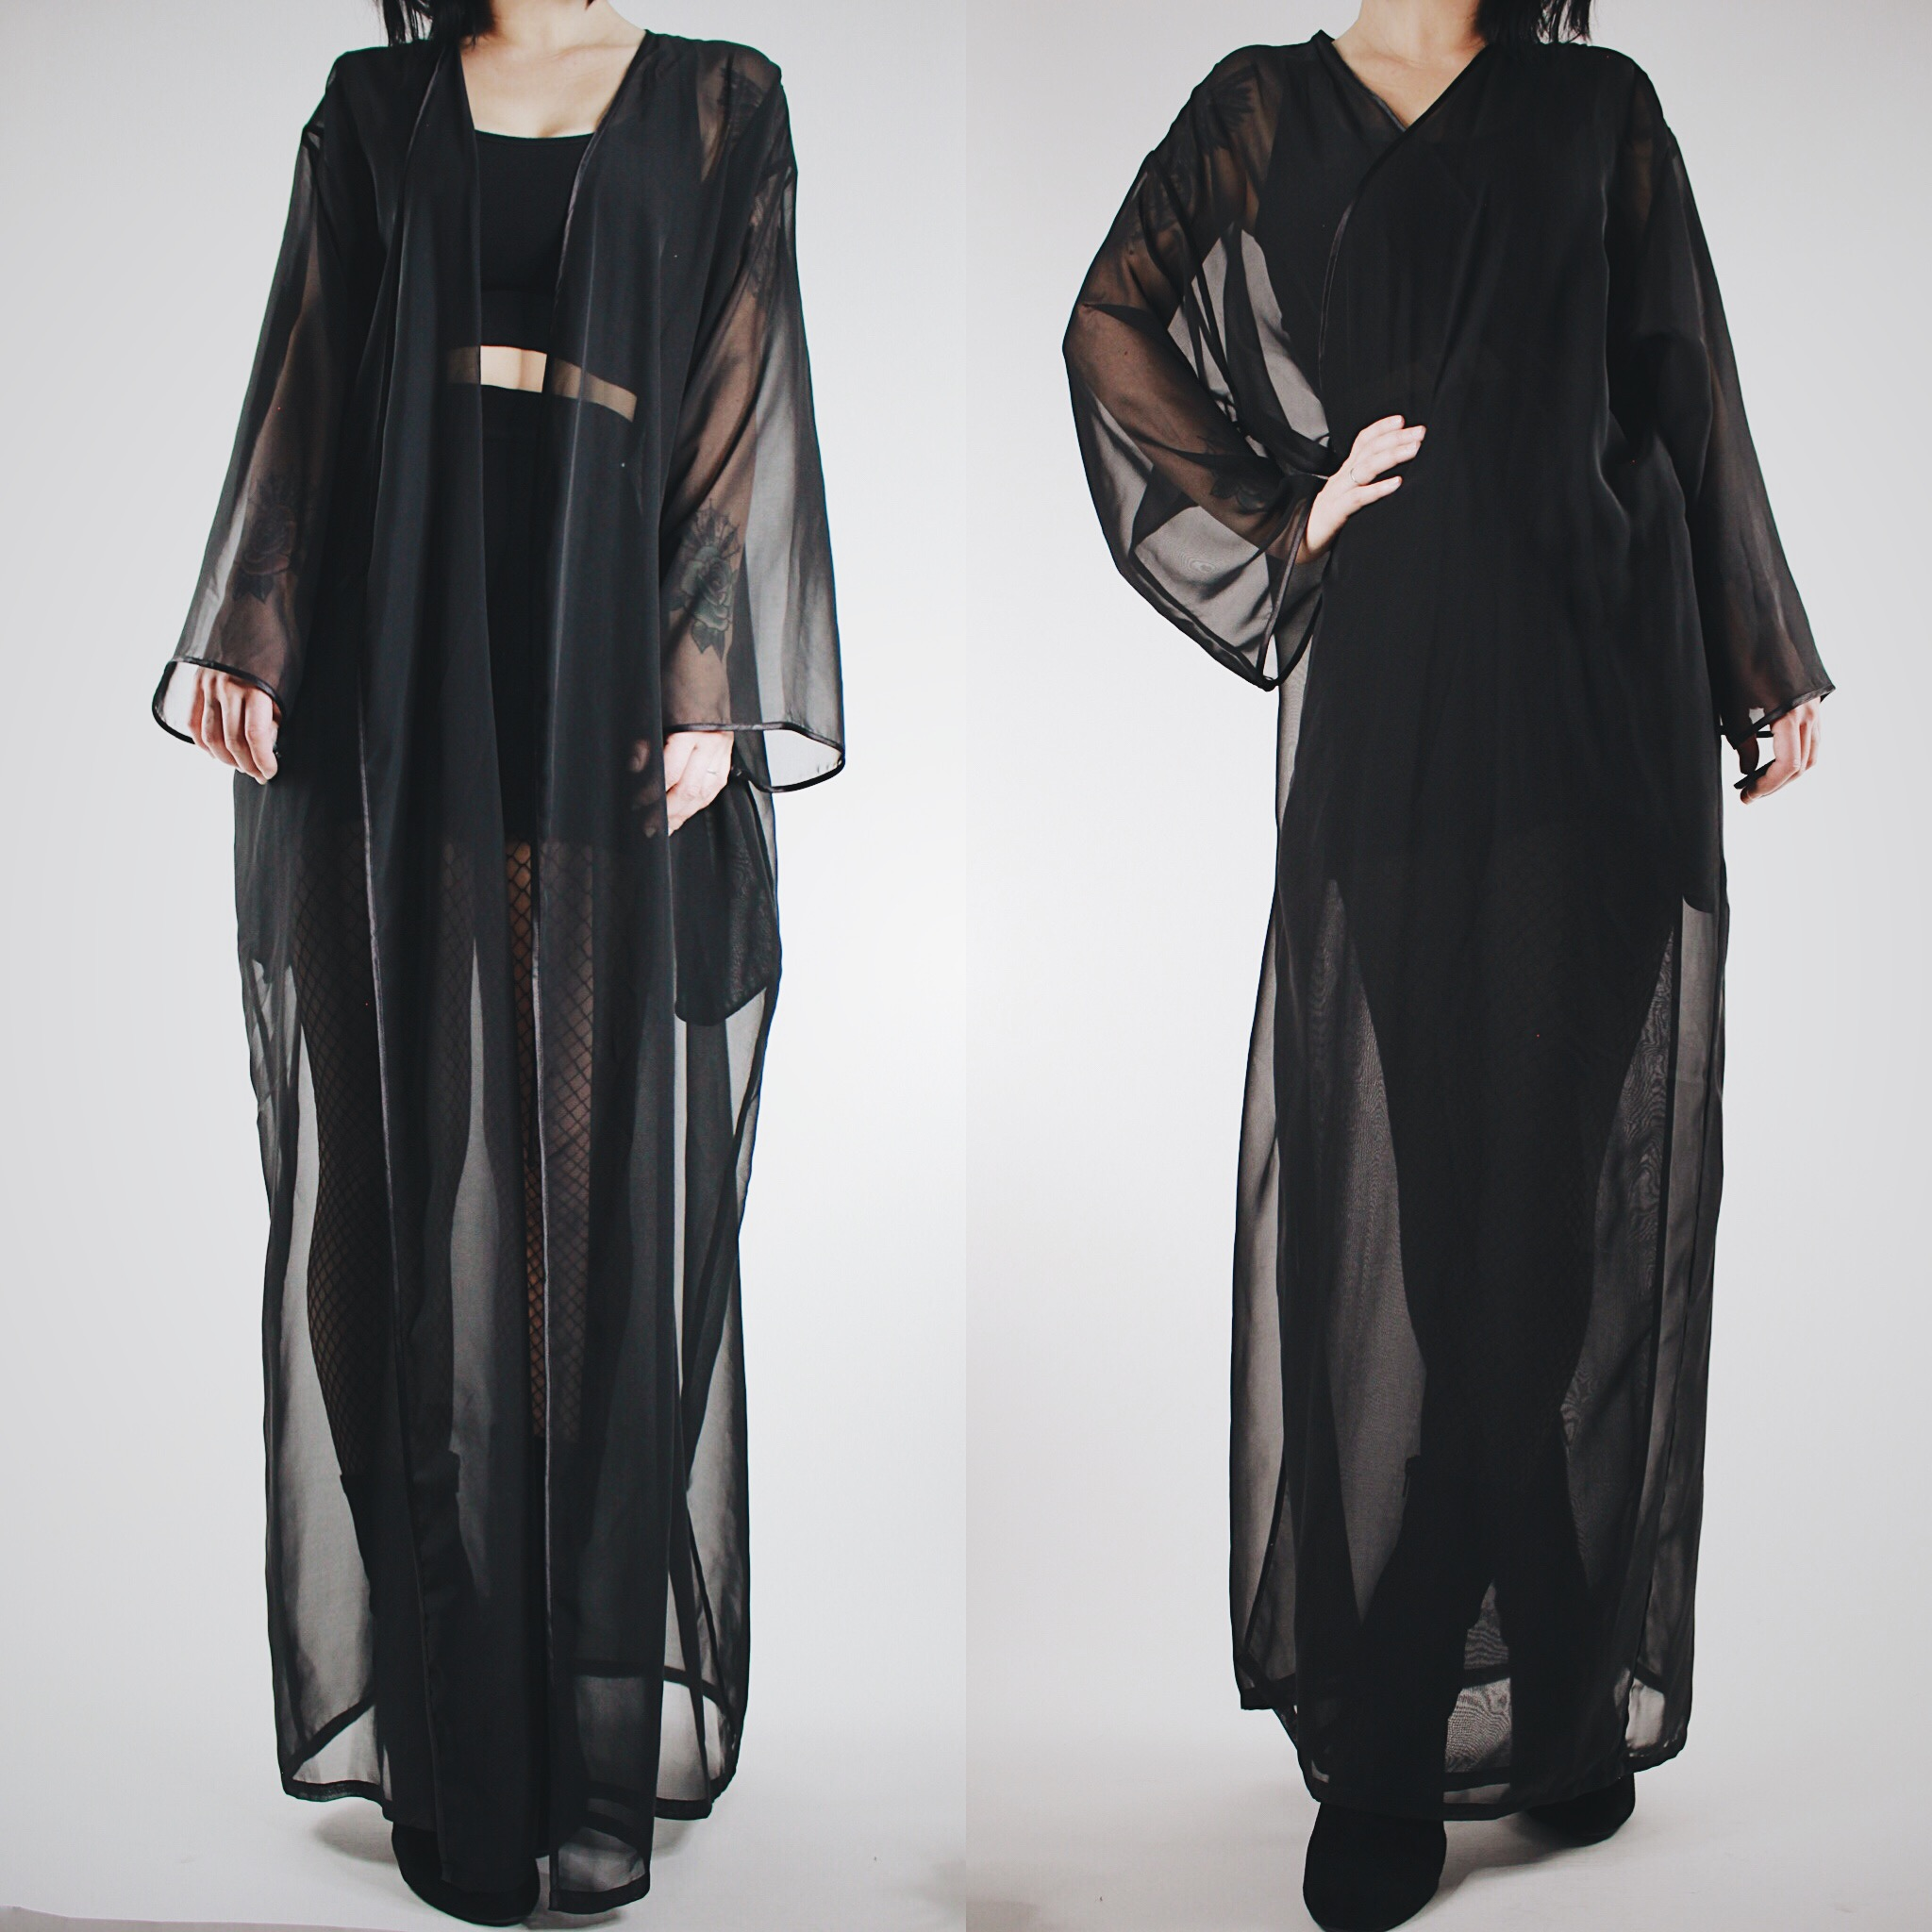 0afa88e6d32a CLAIMED @skully_mean - Vintage 80s Black Sheer Flowy Multi-Way Dressing Gown